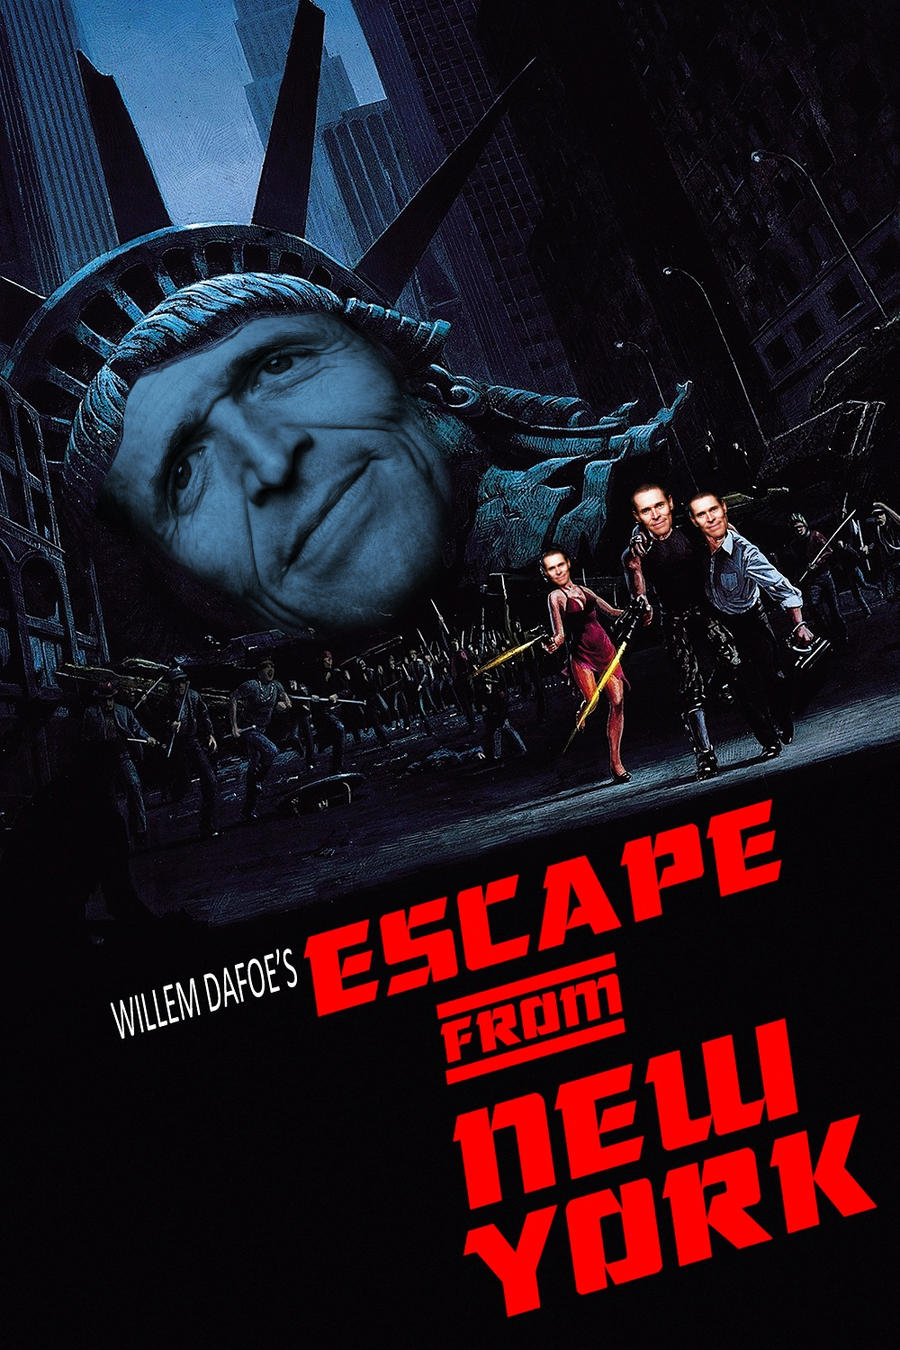 Escape from New York (Podtoid) by SirTobbii